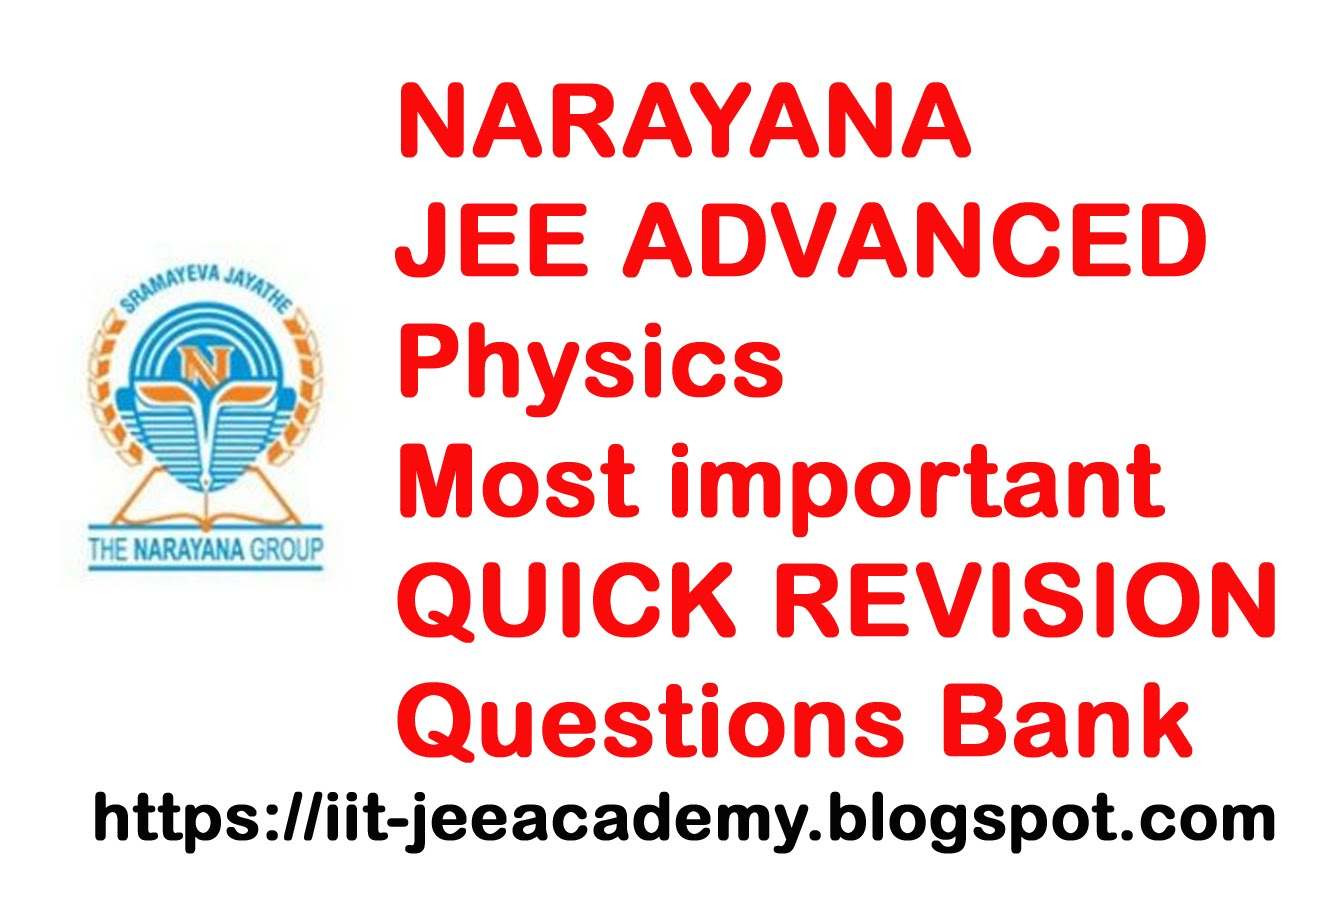 NARAYANA JEE ADVANCED 2019 Physics Most important QUICK REVISION